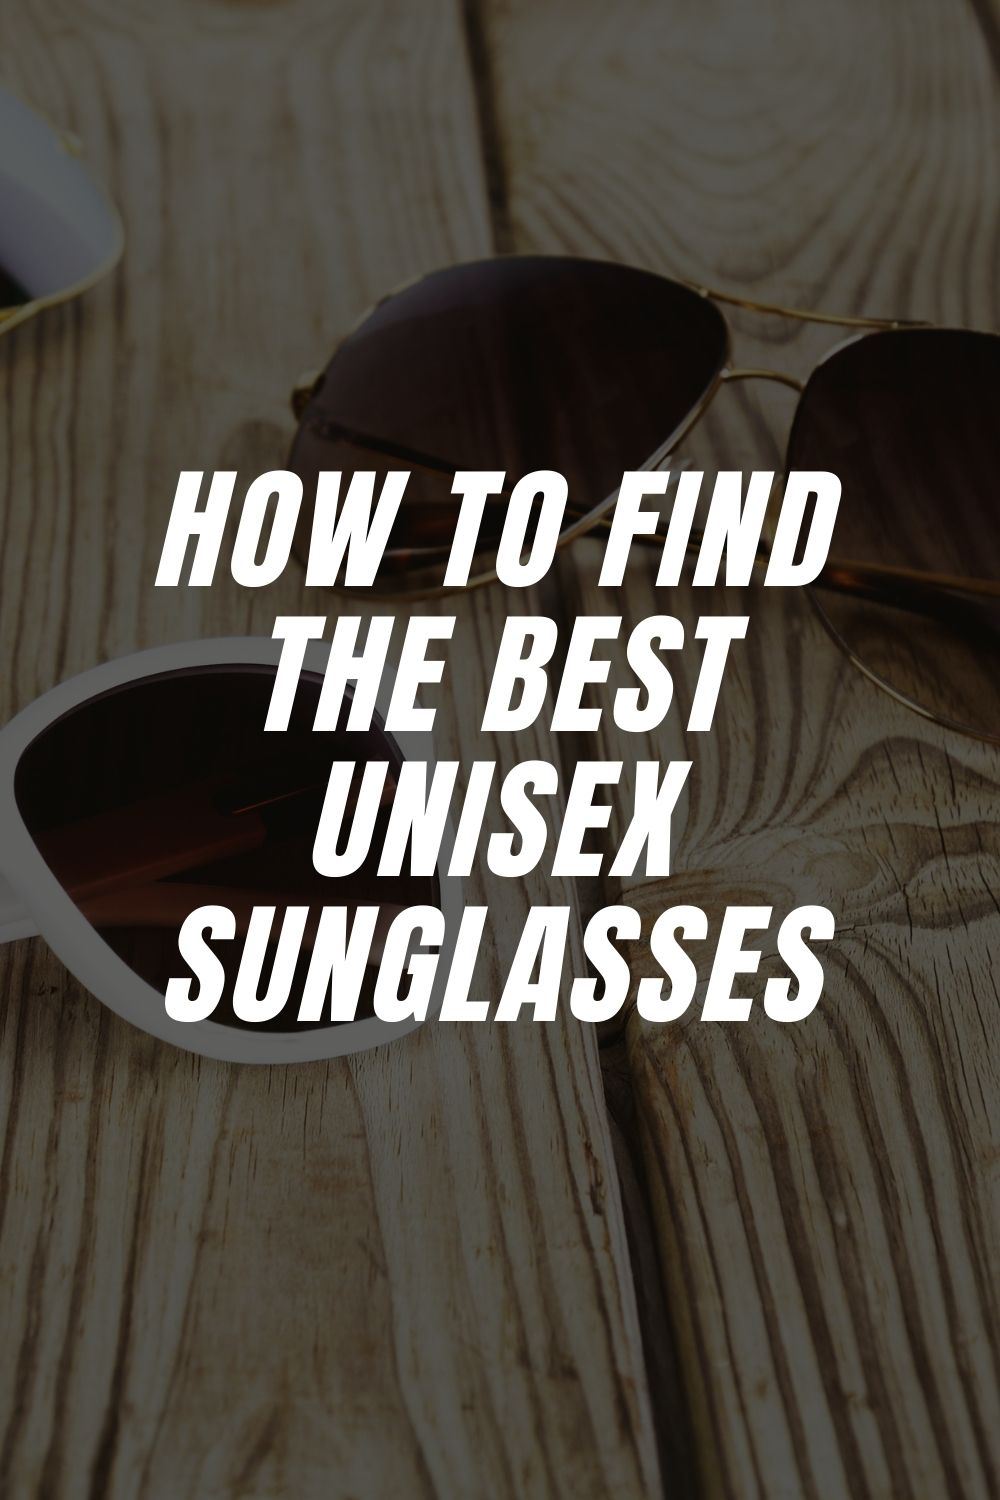 How To Find the Best Unisex Sunglasses